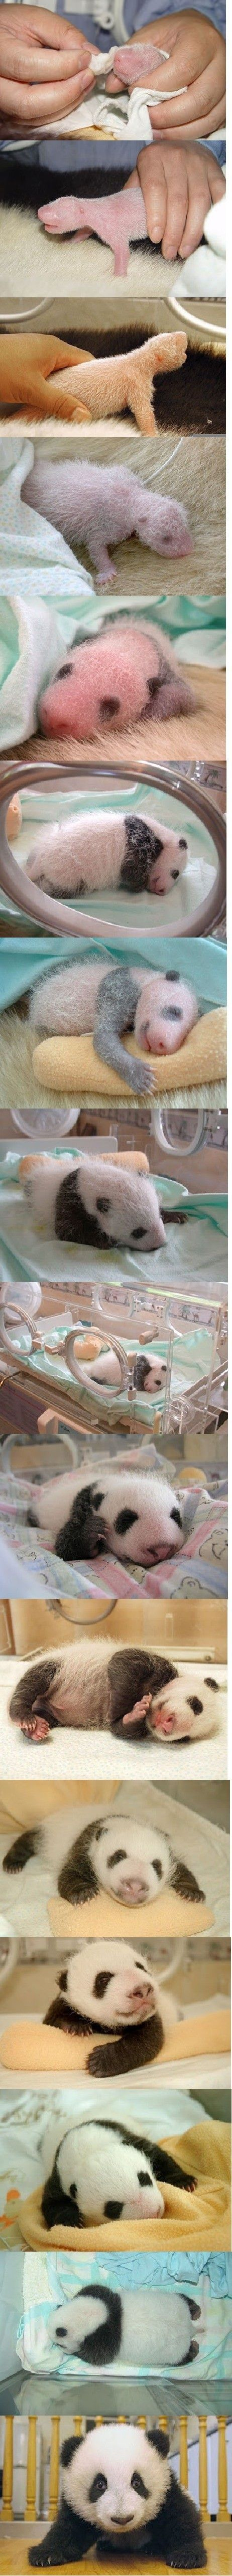 A newborn panda weighs three to five ounces. Pink, hairless, and blind, the cub is 1/900th the size of its mother. Except for a marsupial (such as the kangaroo or opossum), panda babies are the smallest newborn mammals relative to their mother's size.